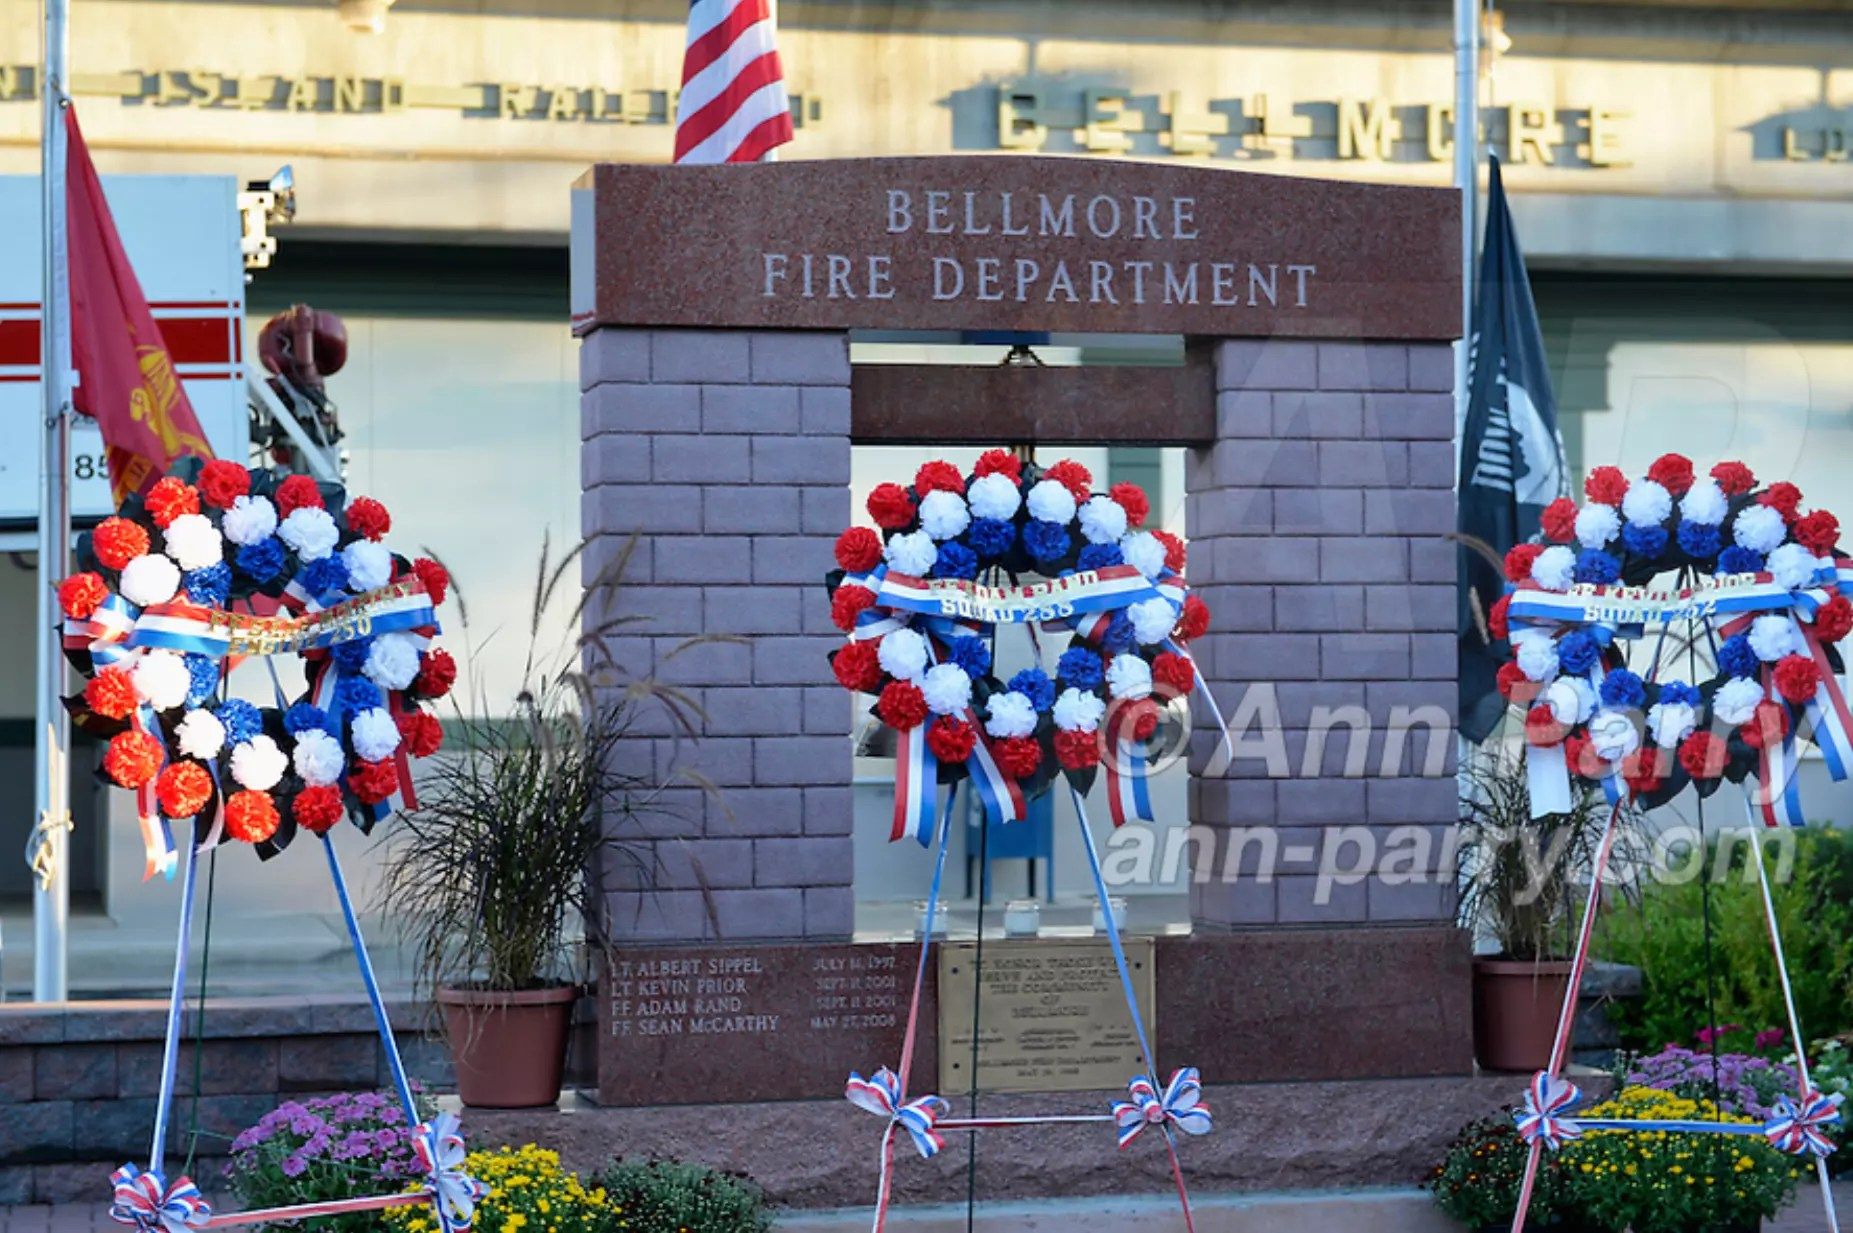 Bellmore, NY, USA. Sept. 11, 2015. At Bellmore Memorial Ceremony for 3 Bellmore volunteer firefighters and 7 residents who died due to 9/11 terrorist attack at NYC Twin Towers, a wreath is placed for each firefighter lost. Bellmore volunteer firefighters Lt. Kevin Prior and F.F. Adam Rand died on 9/11/2001, and F.F. Sean McCarthy died in 2008 due to illness related to working at scene of attack.